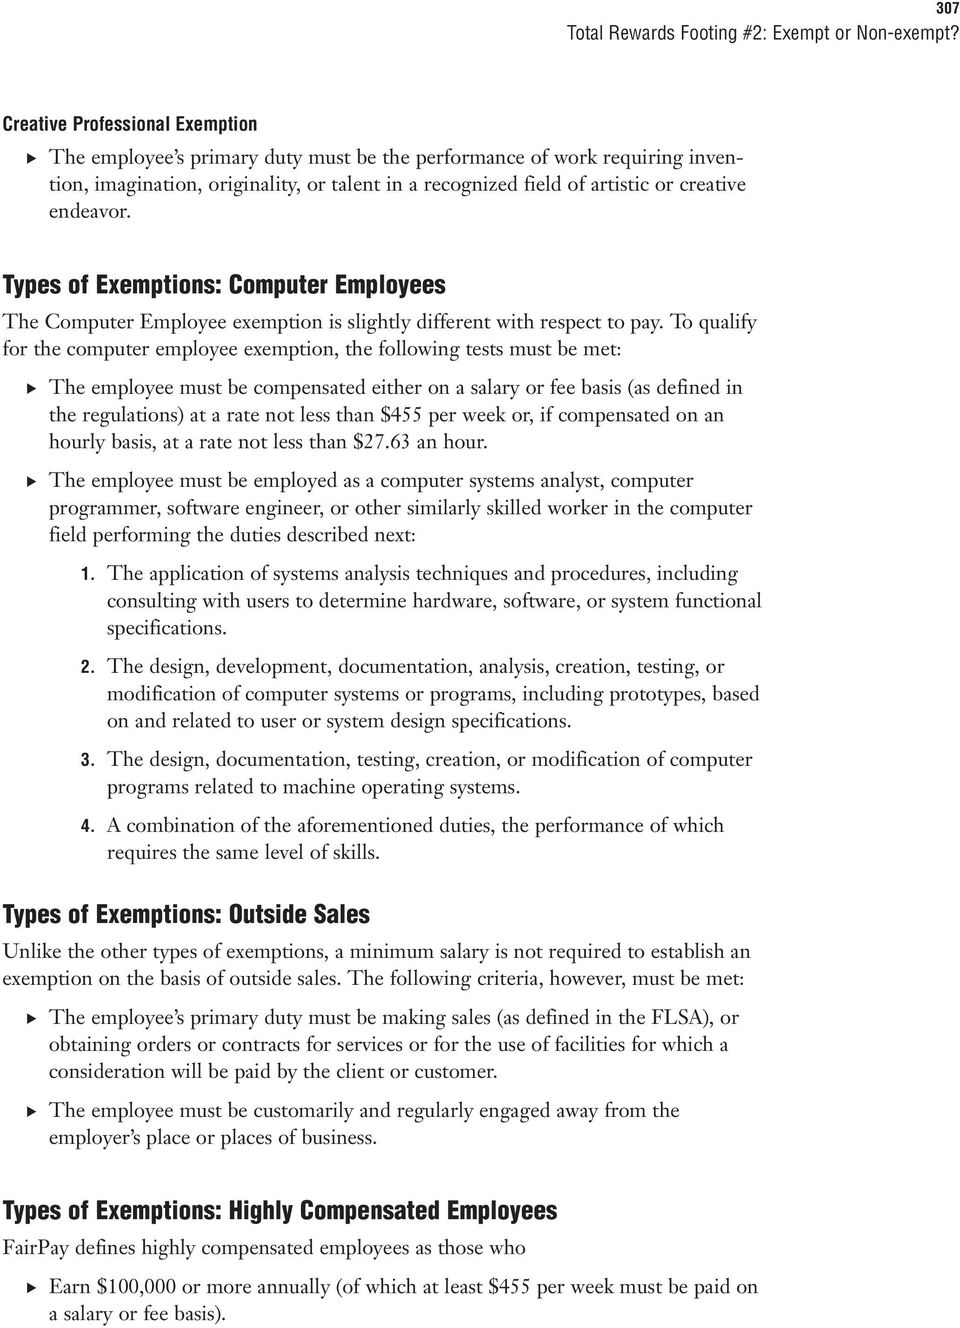 Types of Exemptions: Computer Employees The Computer Employee exemption is slightly different with respect to pay. To qualify for the computer employee exemption, the following tests must be met:.